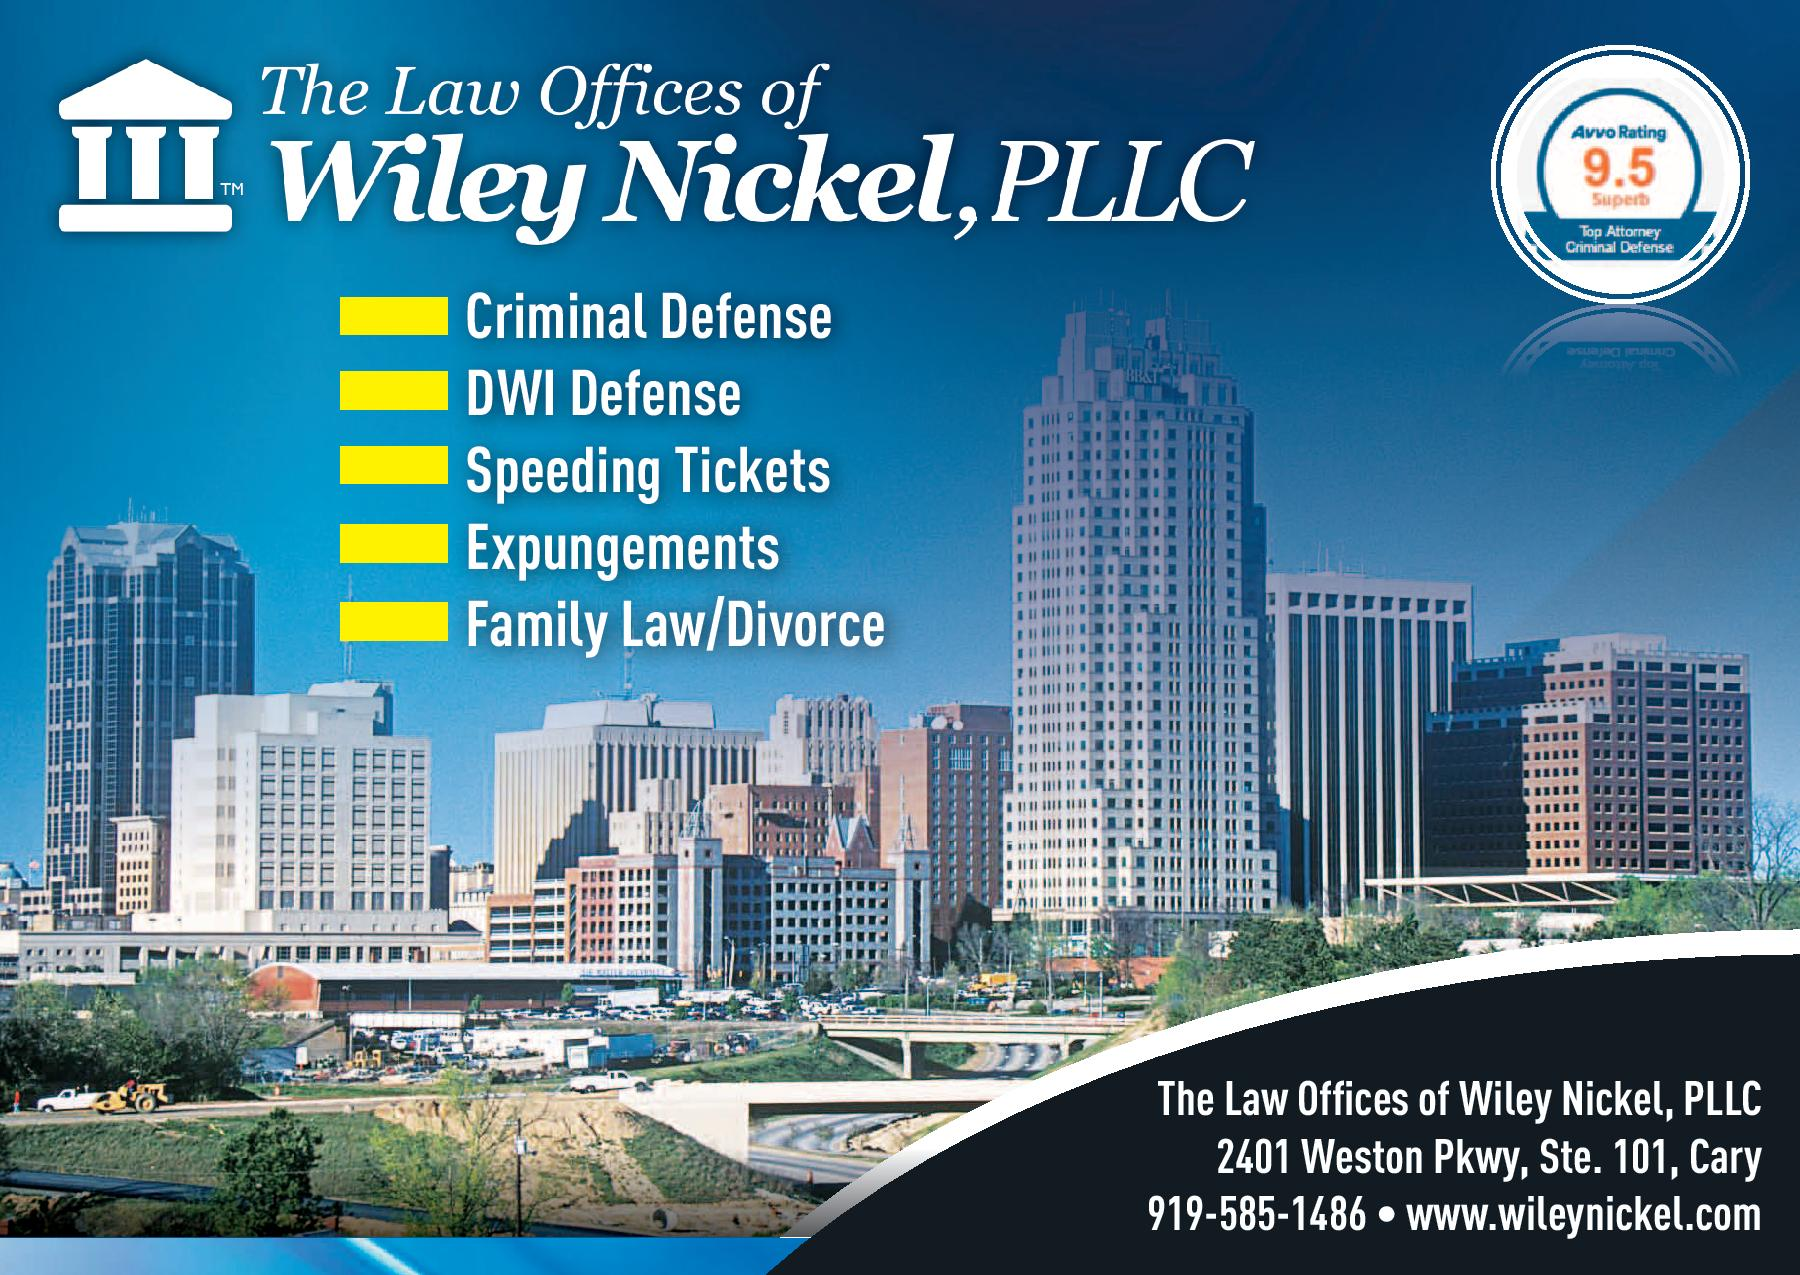 Law Offices of Wiley Nickel Postcard